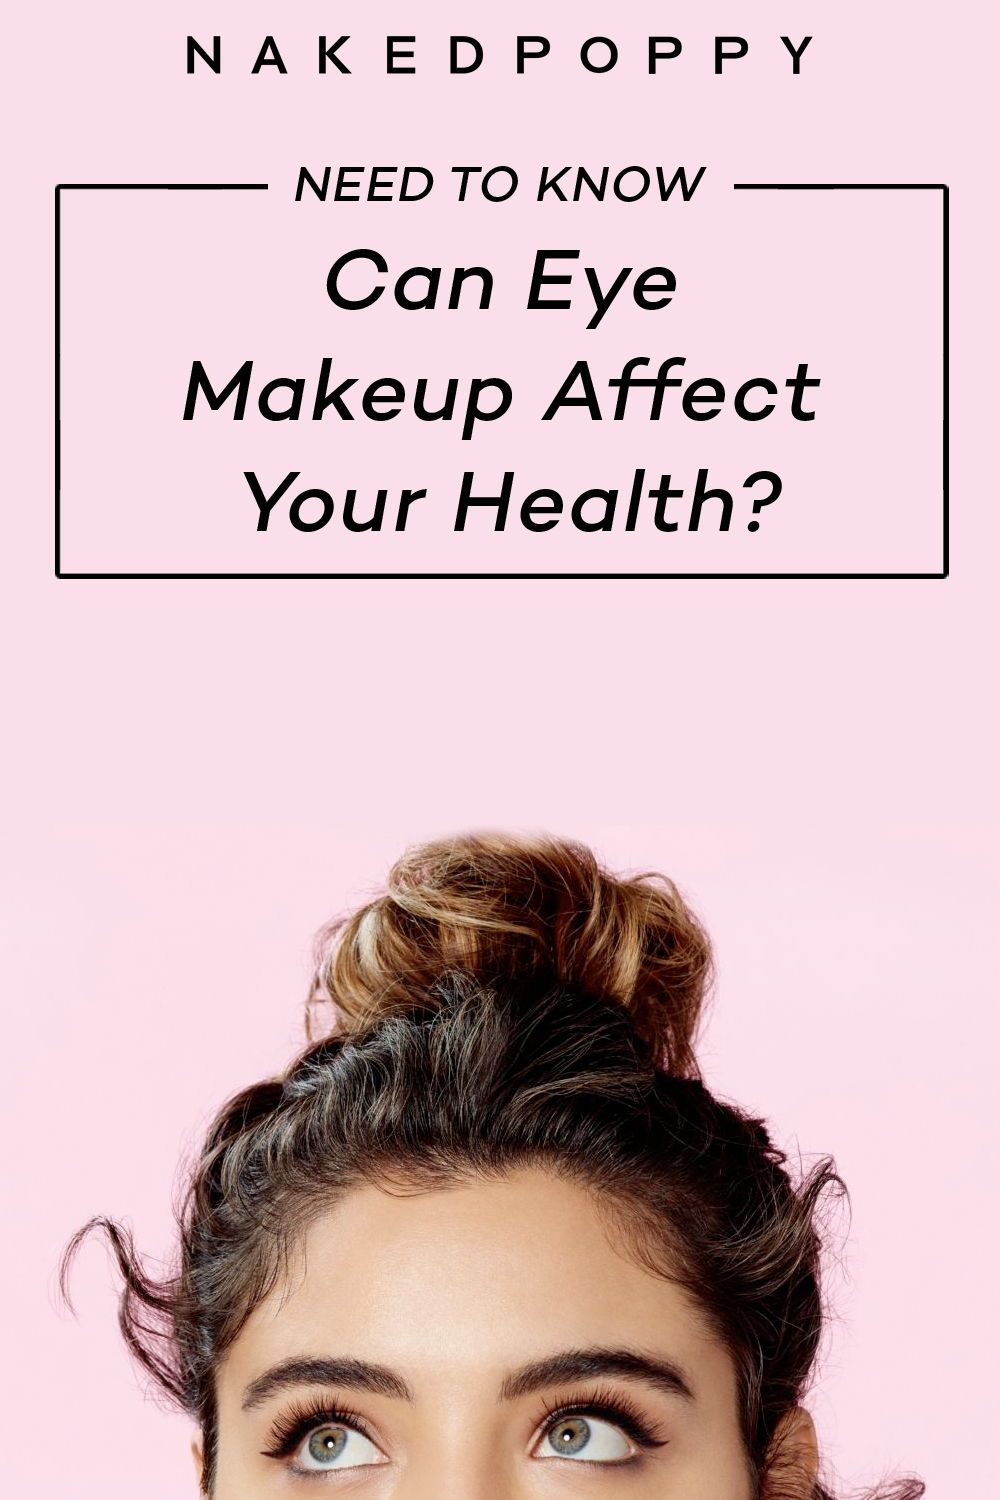 Can Eye Makeup Affect Your Health? Here's What You Need to